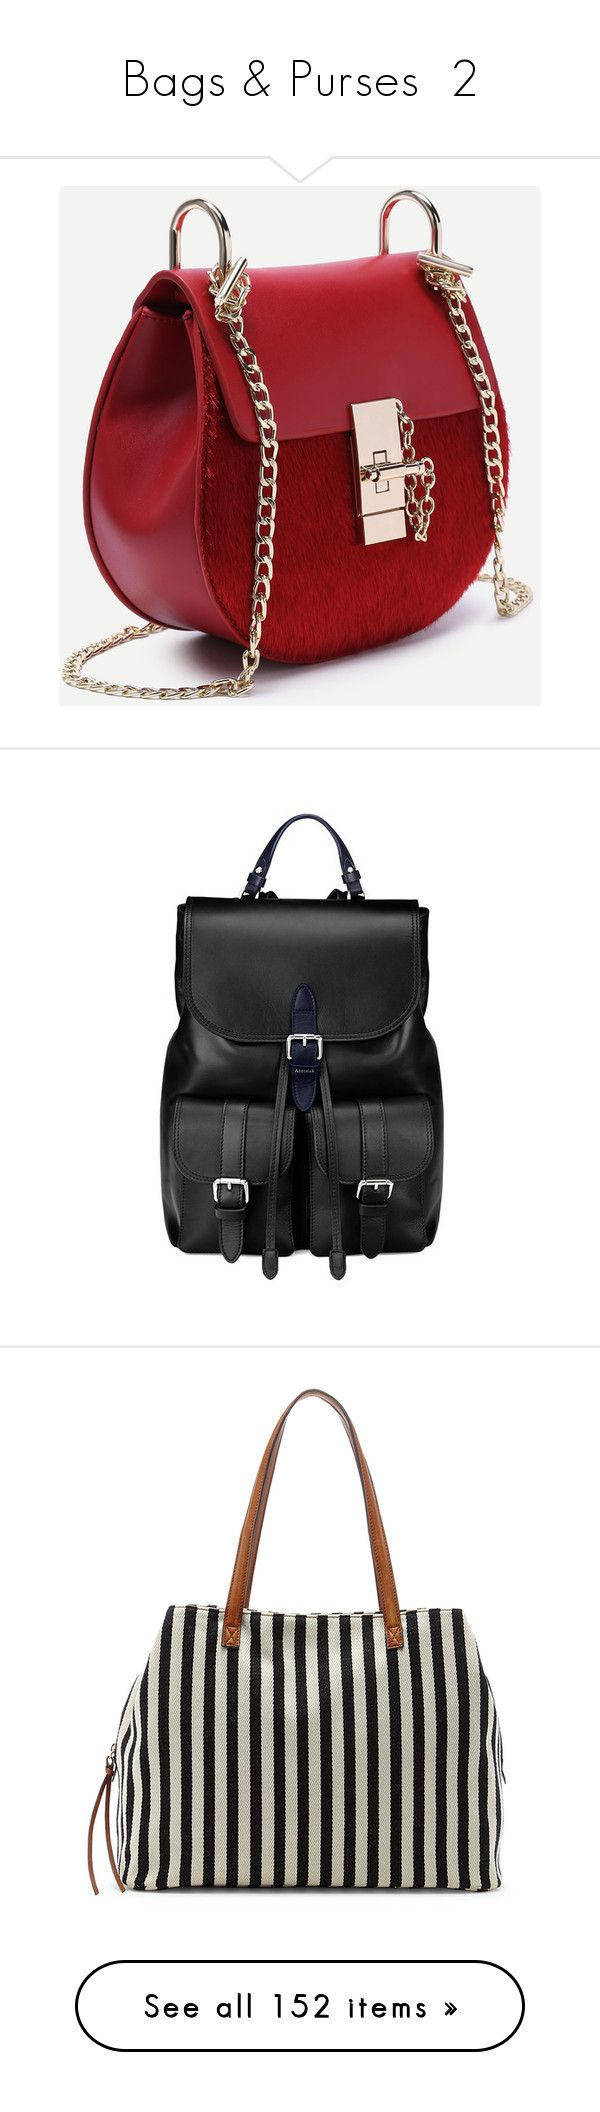 """""""Bags & Purses  2"""" by jillsjoyagol ❤ liked on Polyvore featuring bags, handbags, shoulder bags, pu purse, chain-strap handbags, red handbags, chain handle handbags, horse saddle bags, backpacks and accessories"""